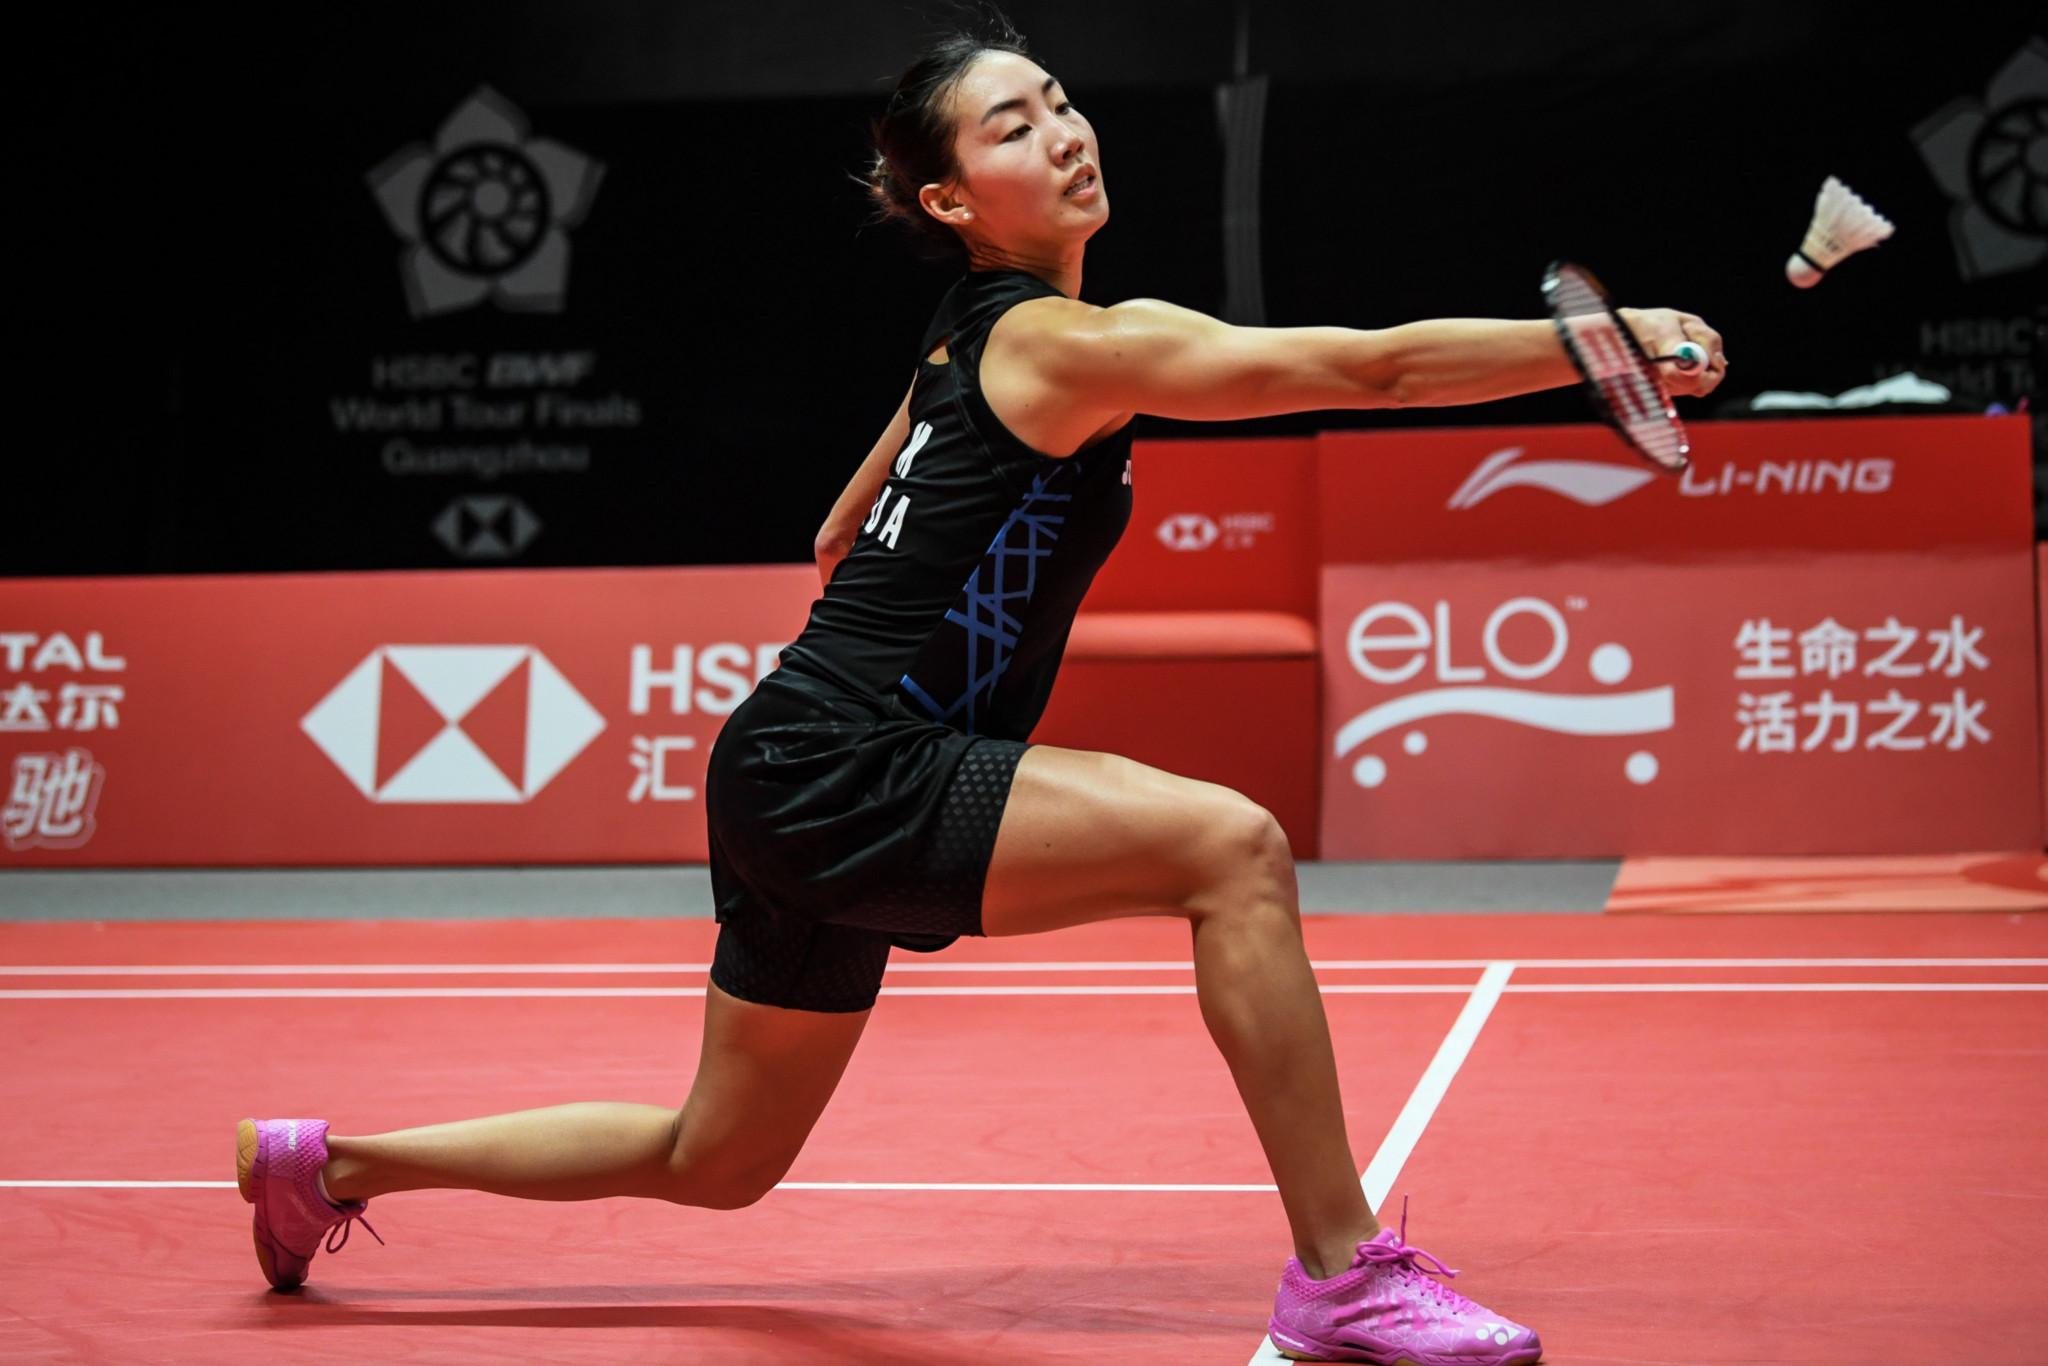 Pan American Badminton Championships to begin in Aguascalientes